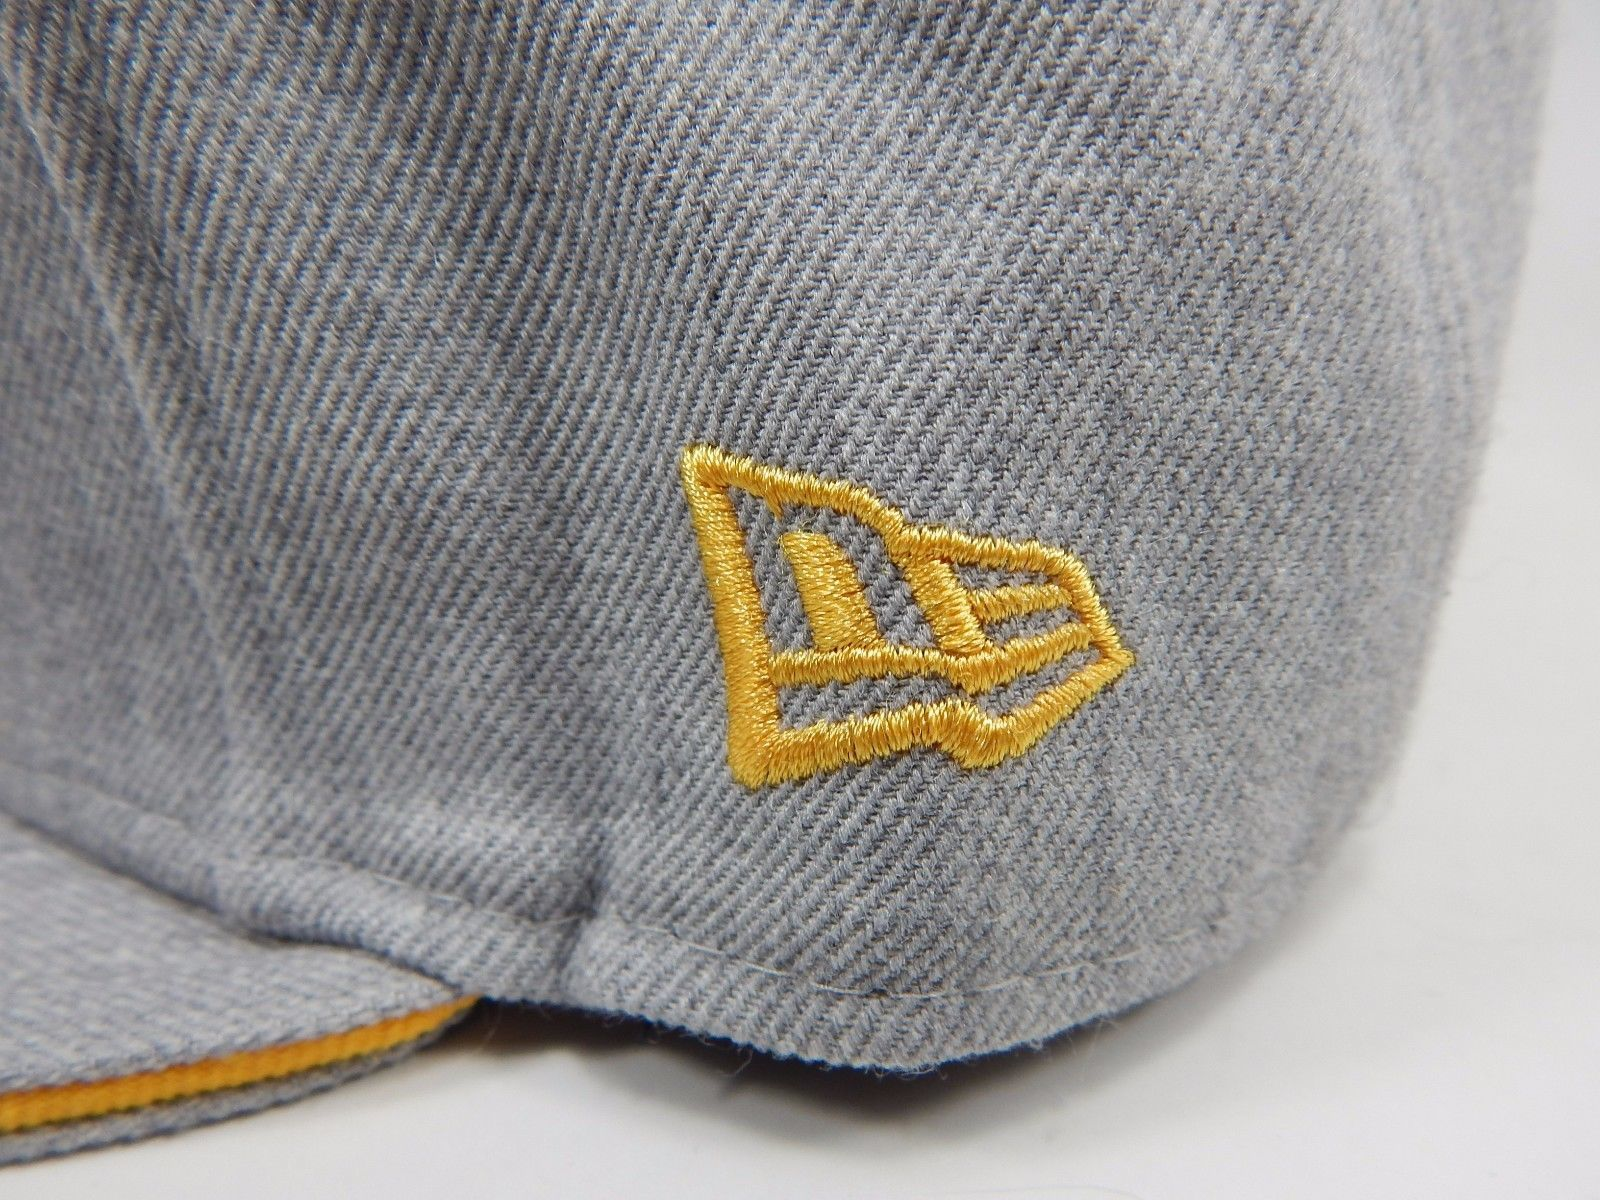 Los Angeles Lakers New Era Size 7 Fitted 59Fifty NBA Cap Hat Light Gray